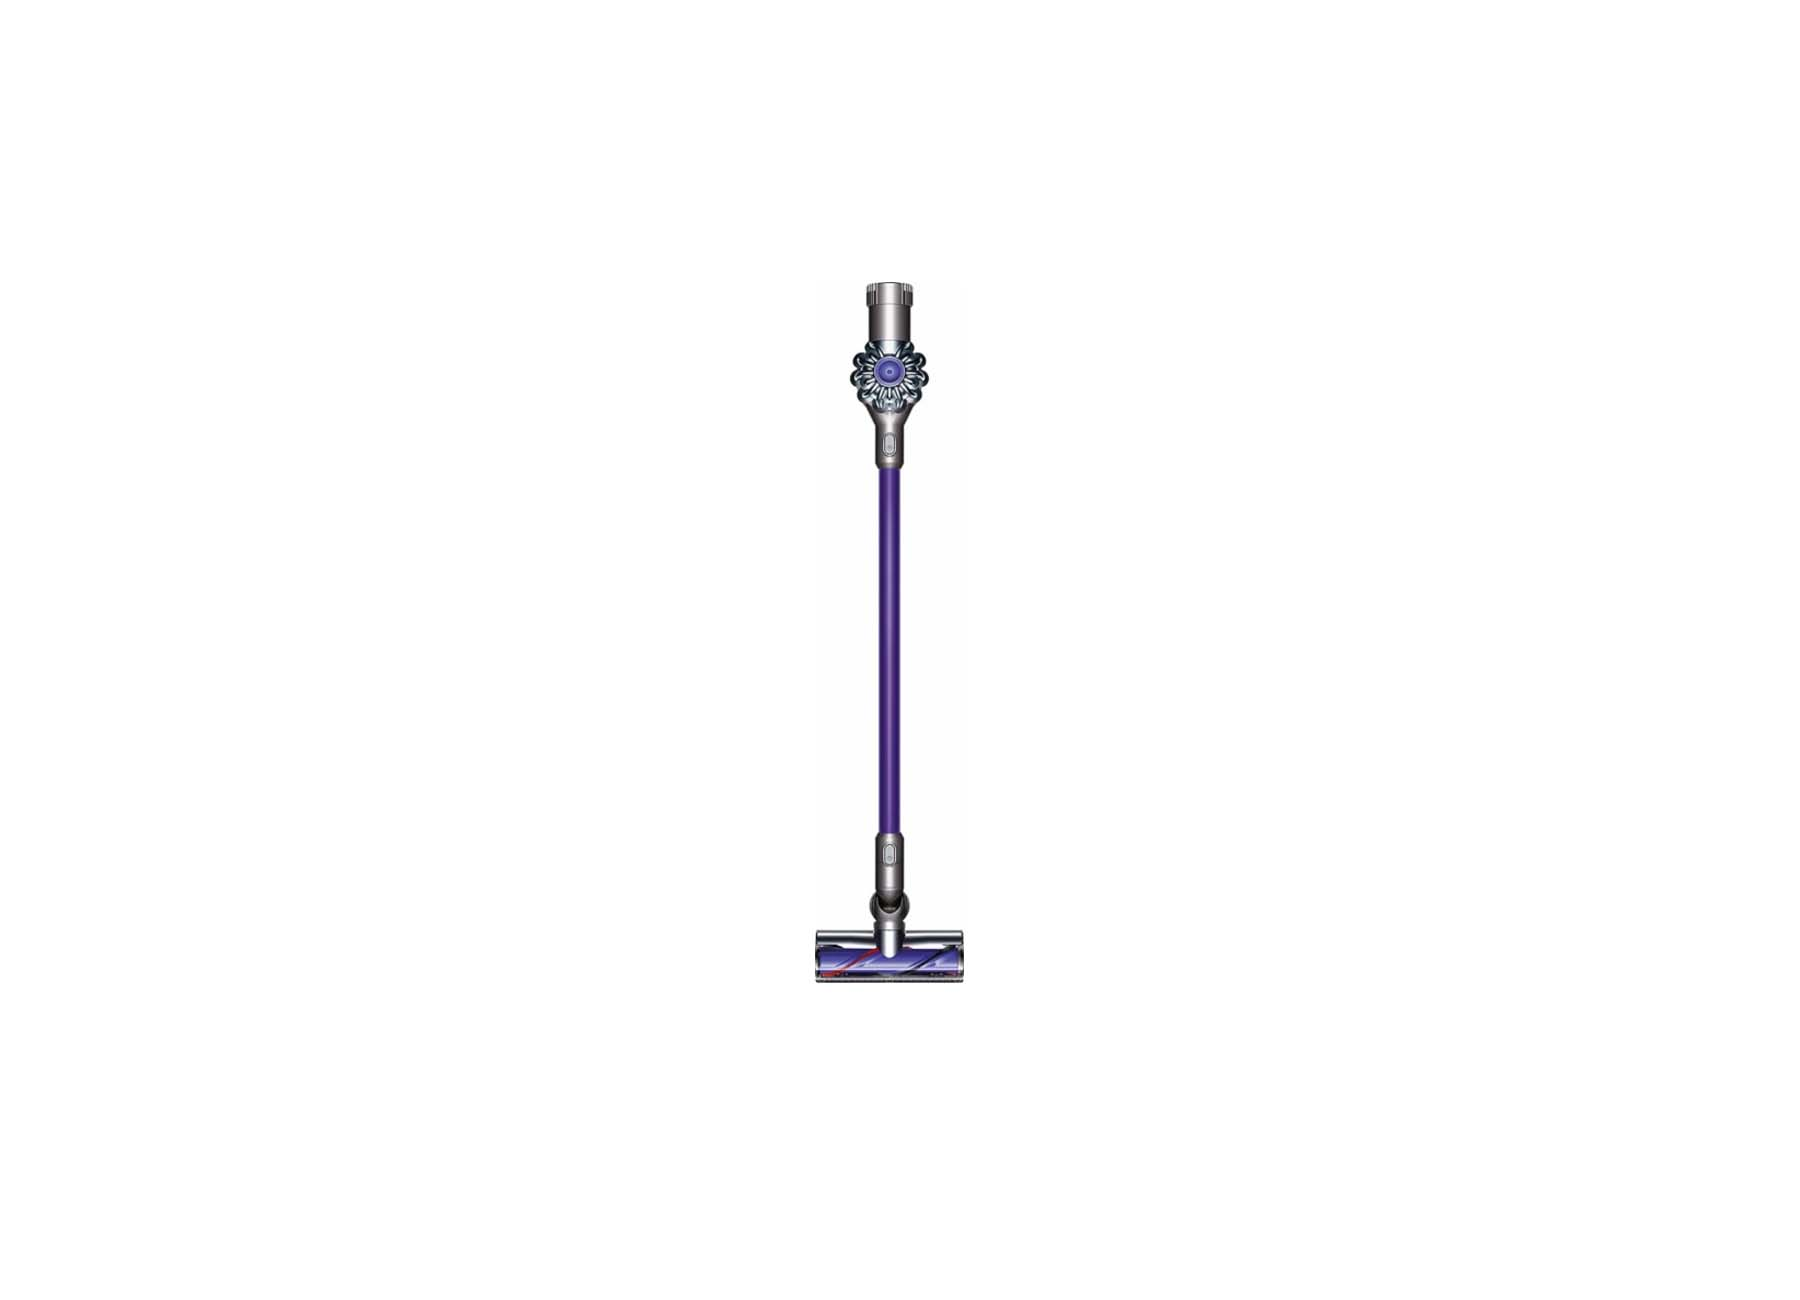 Image of: Handheld Vacuum Dyson V6 Animal Cord Free Vacuum For 24999 At Best Buy The Best Deals Club Dyson V6 Animal Cord Free Vacuum For 24999 At Best Buy The Best